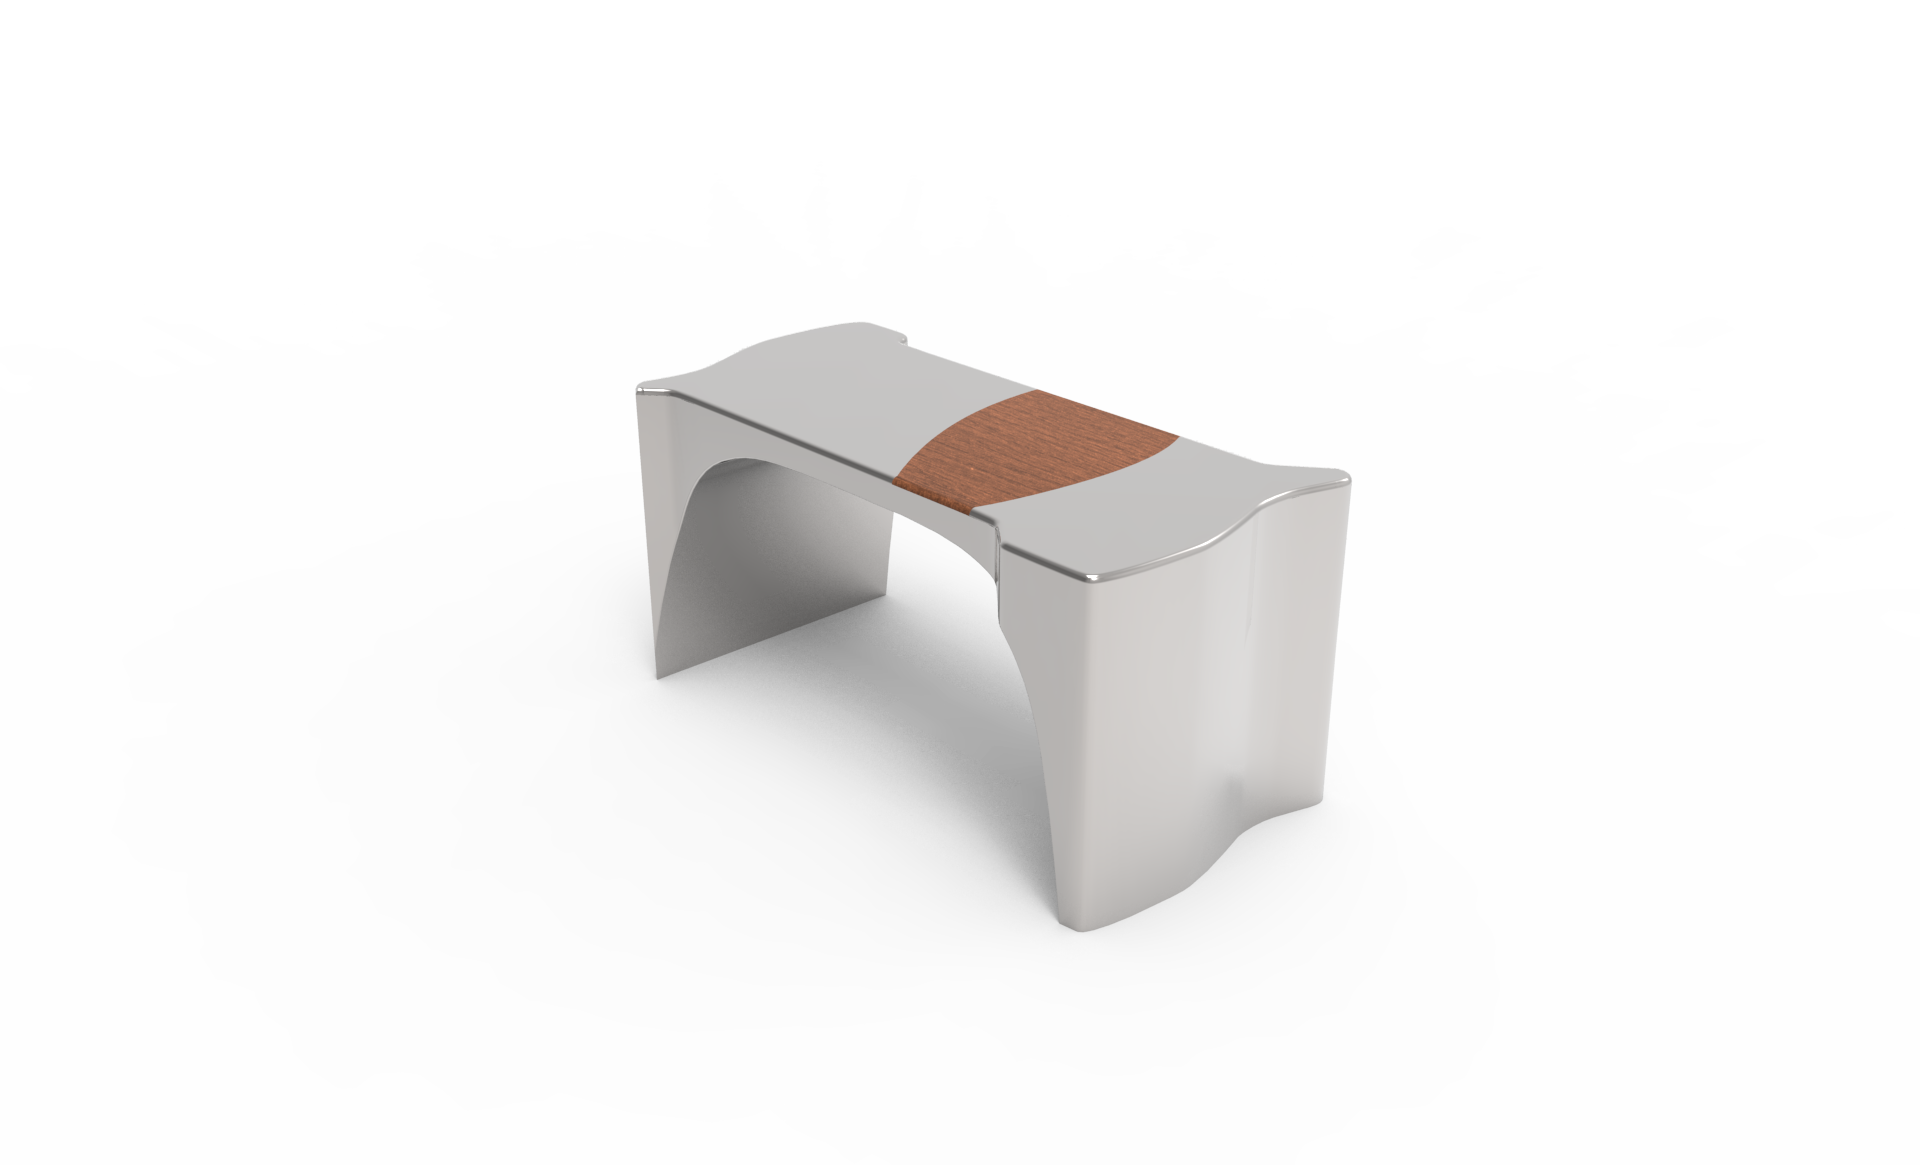 table final render.png